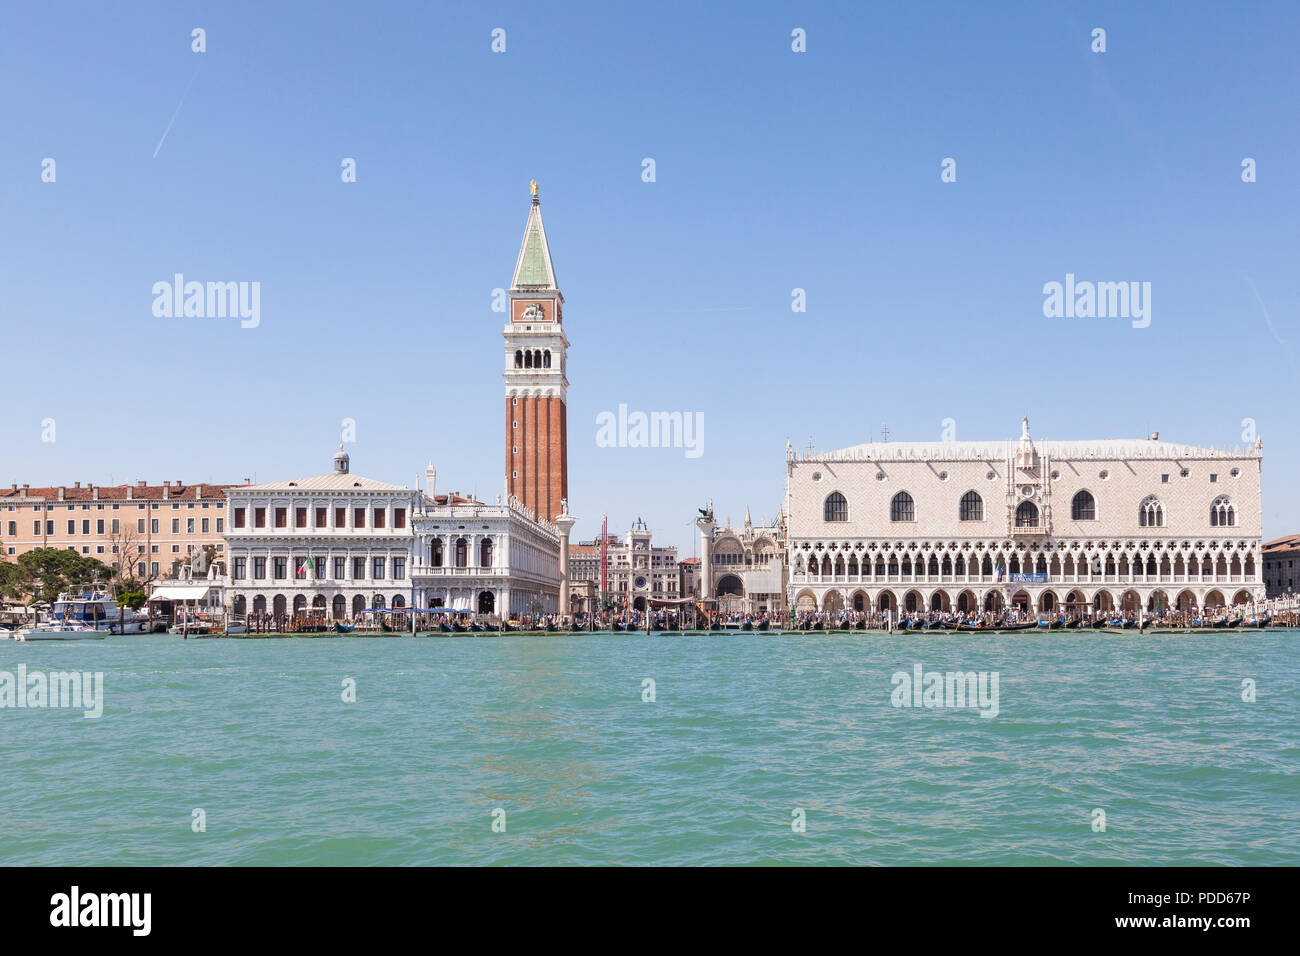 Doges Palace, St Marks Campanile and Marciana Library from the lagoon, Venice, Veneto, Italy with the Clock Tower and crowds of tourists  in summer - Stock Image